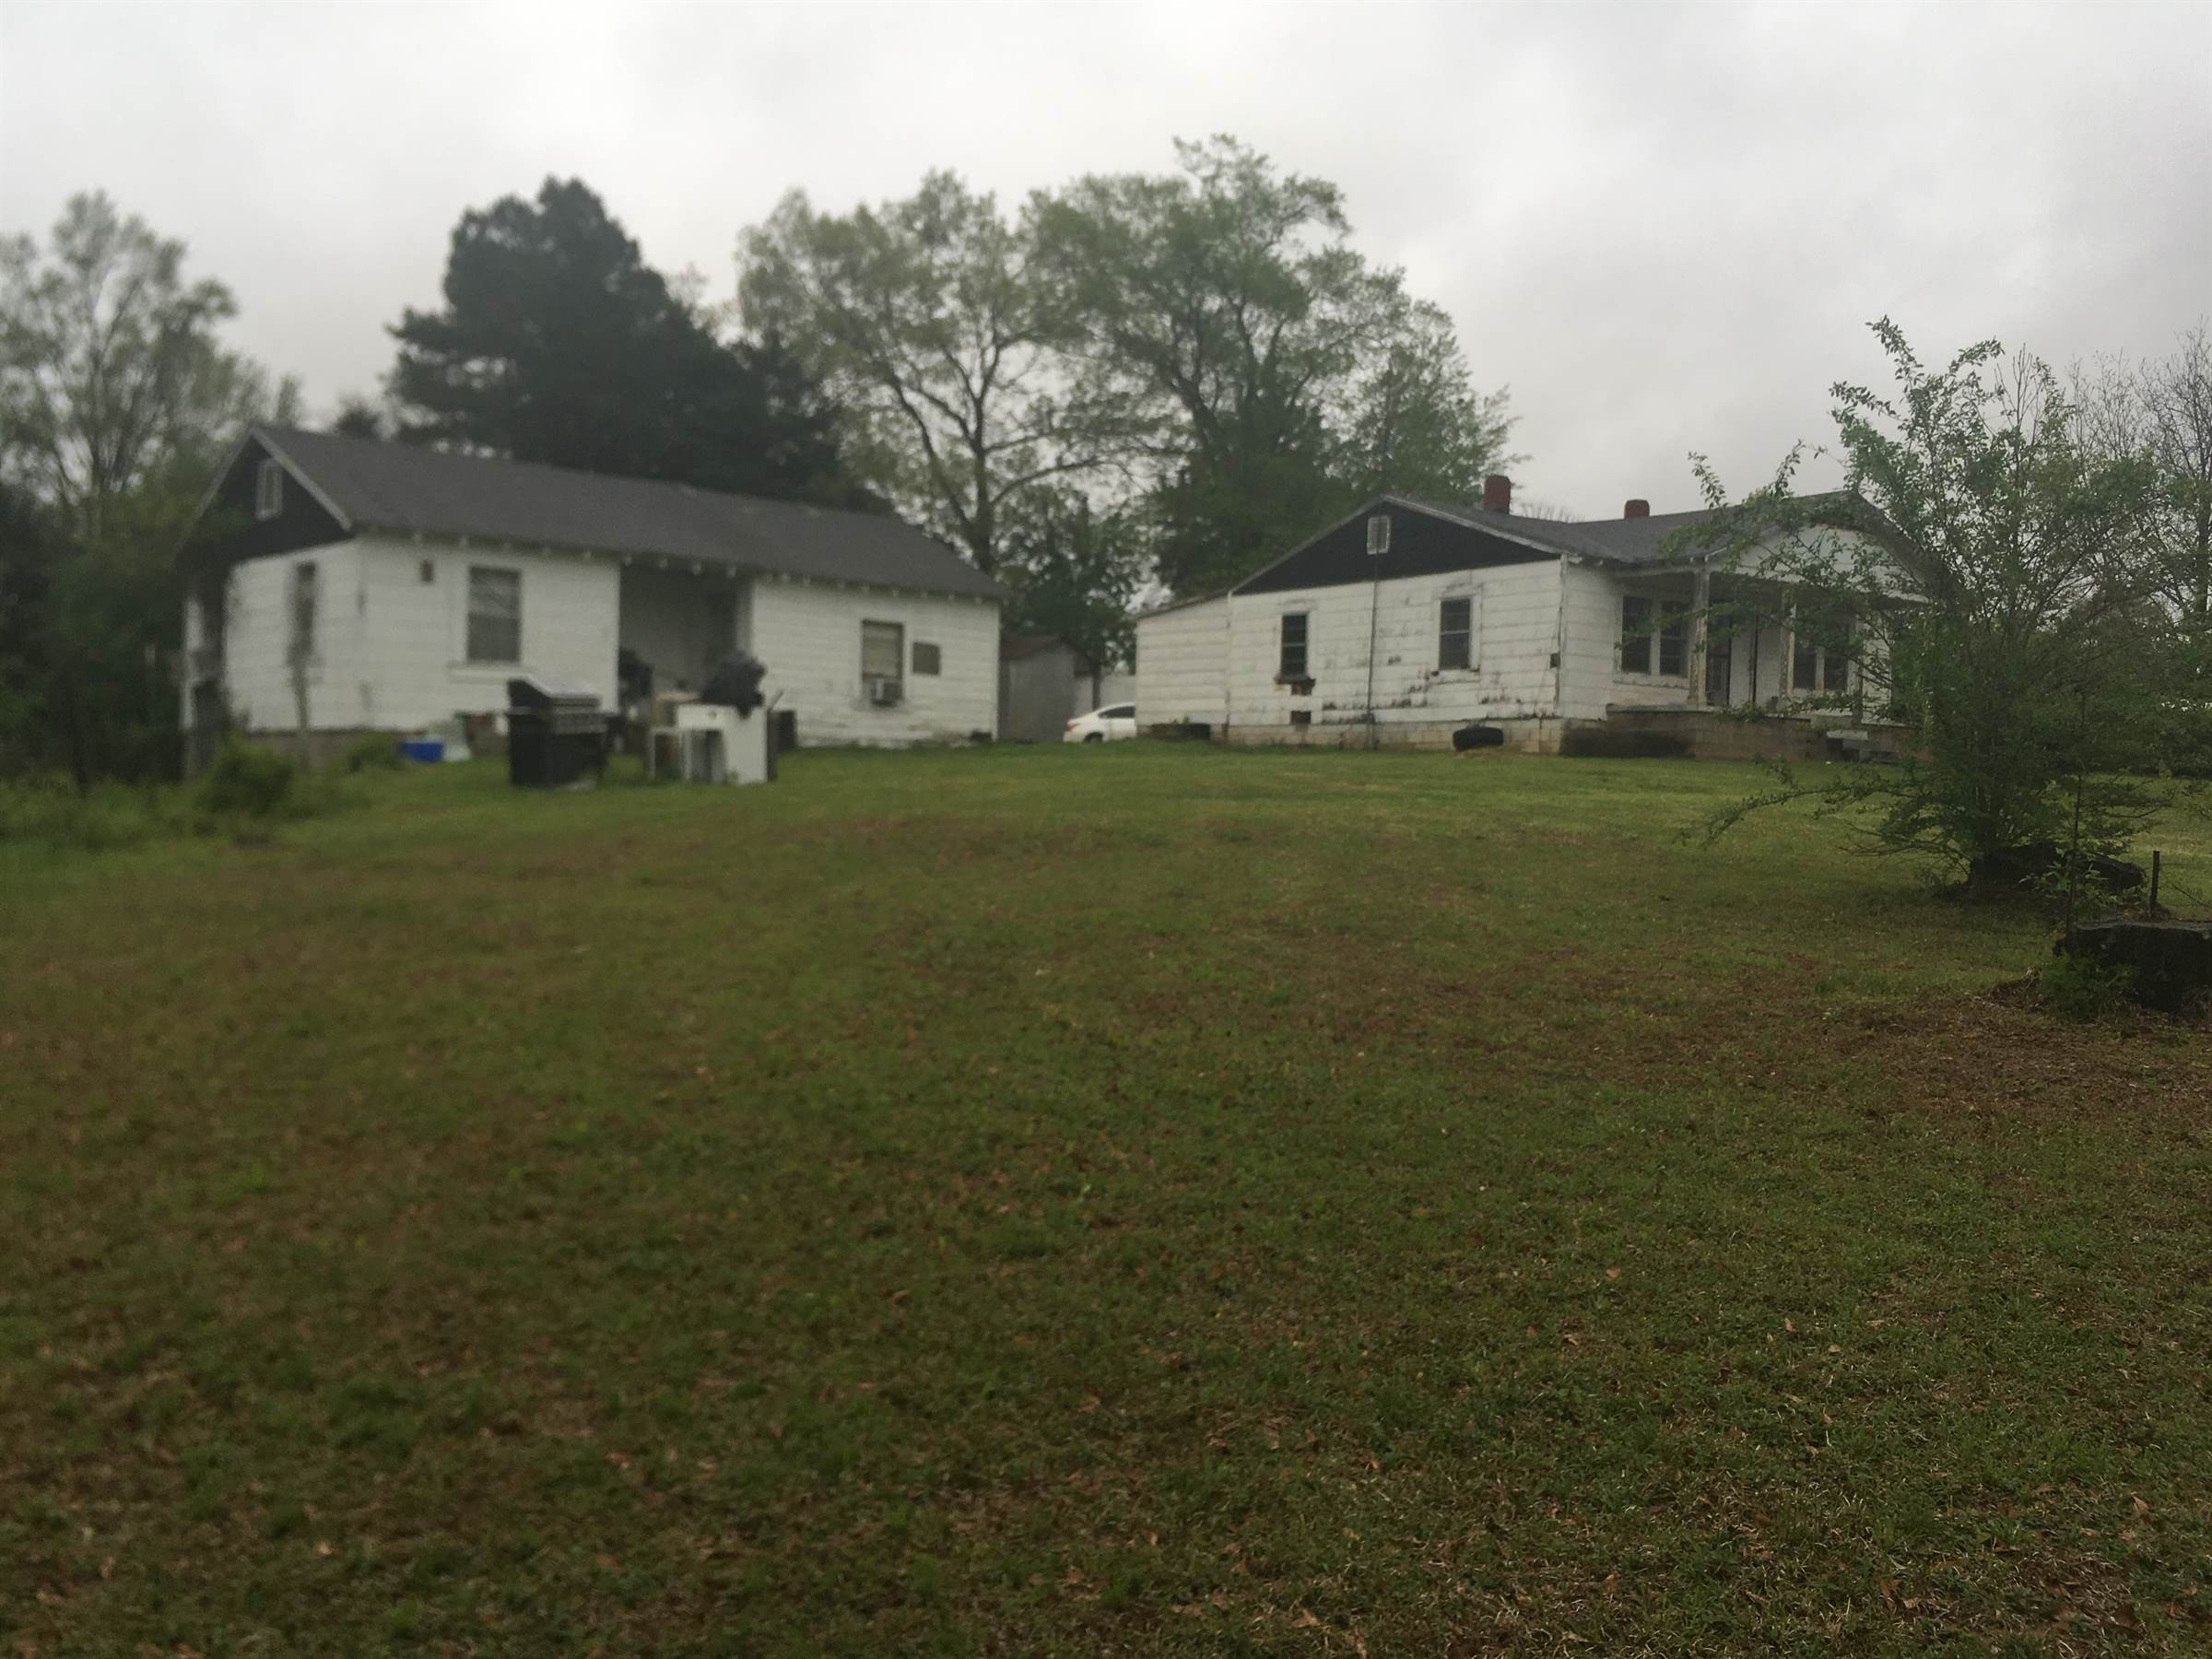 214, 216 Pegues Rd, Oxford, MS 38655